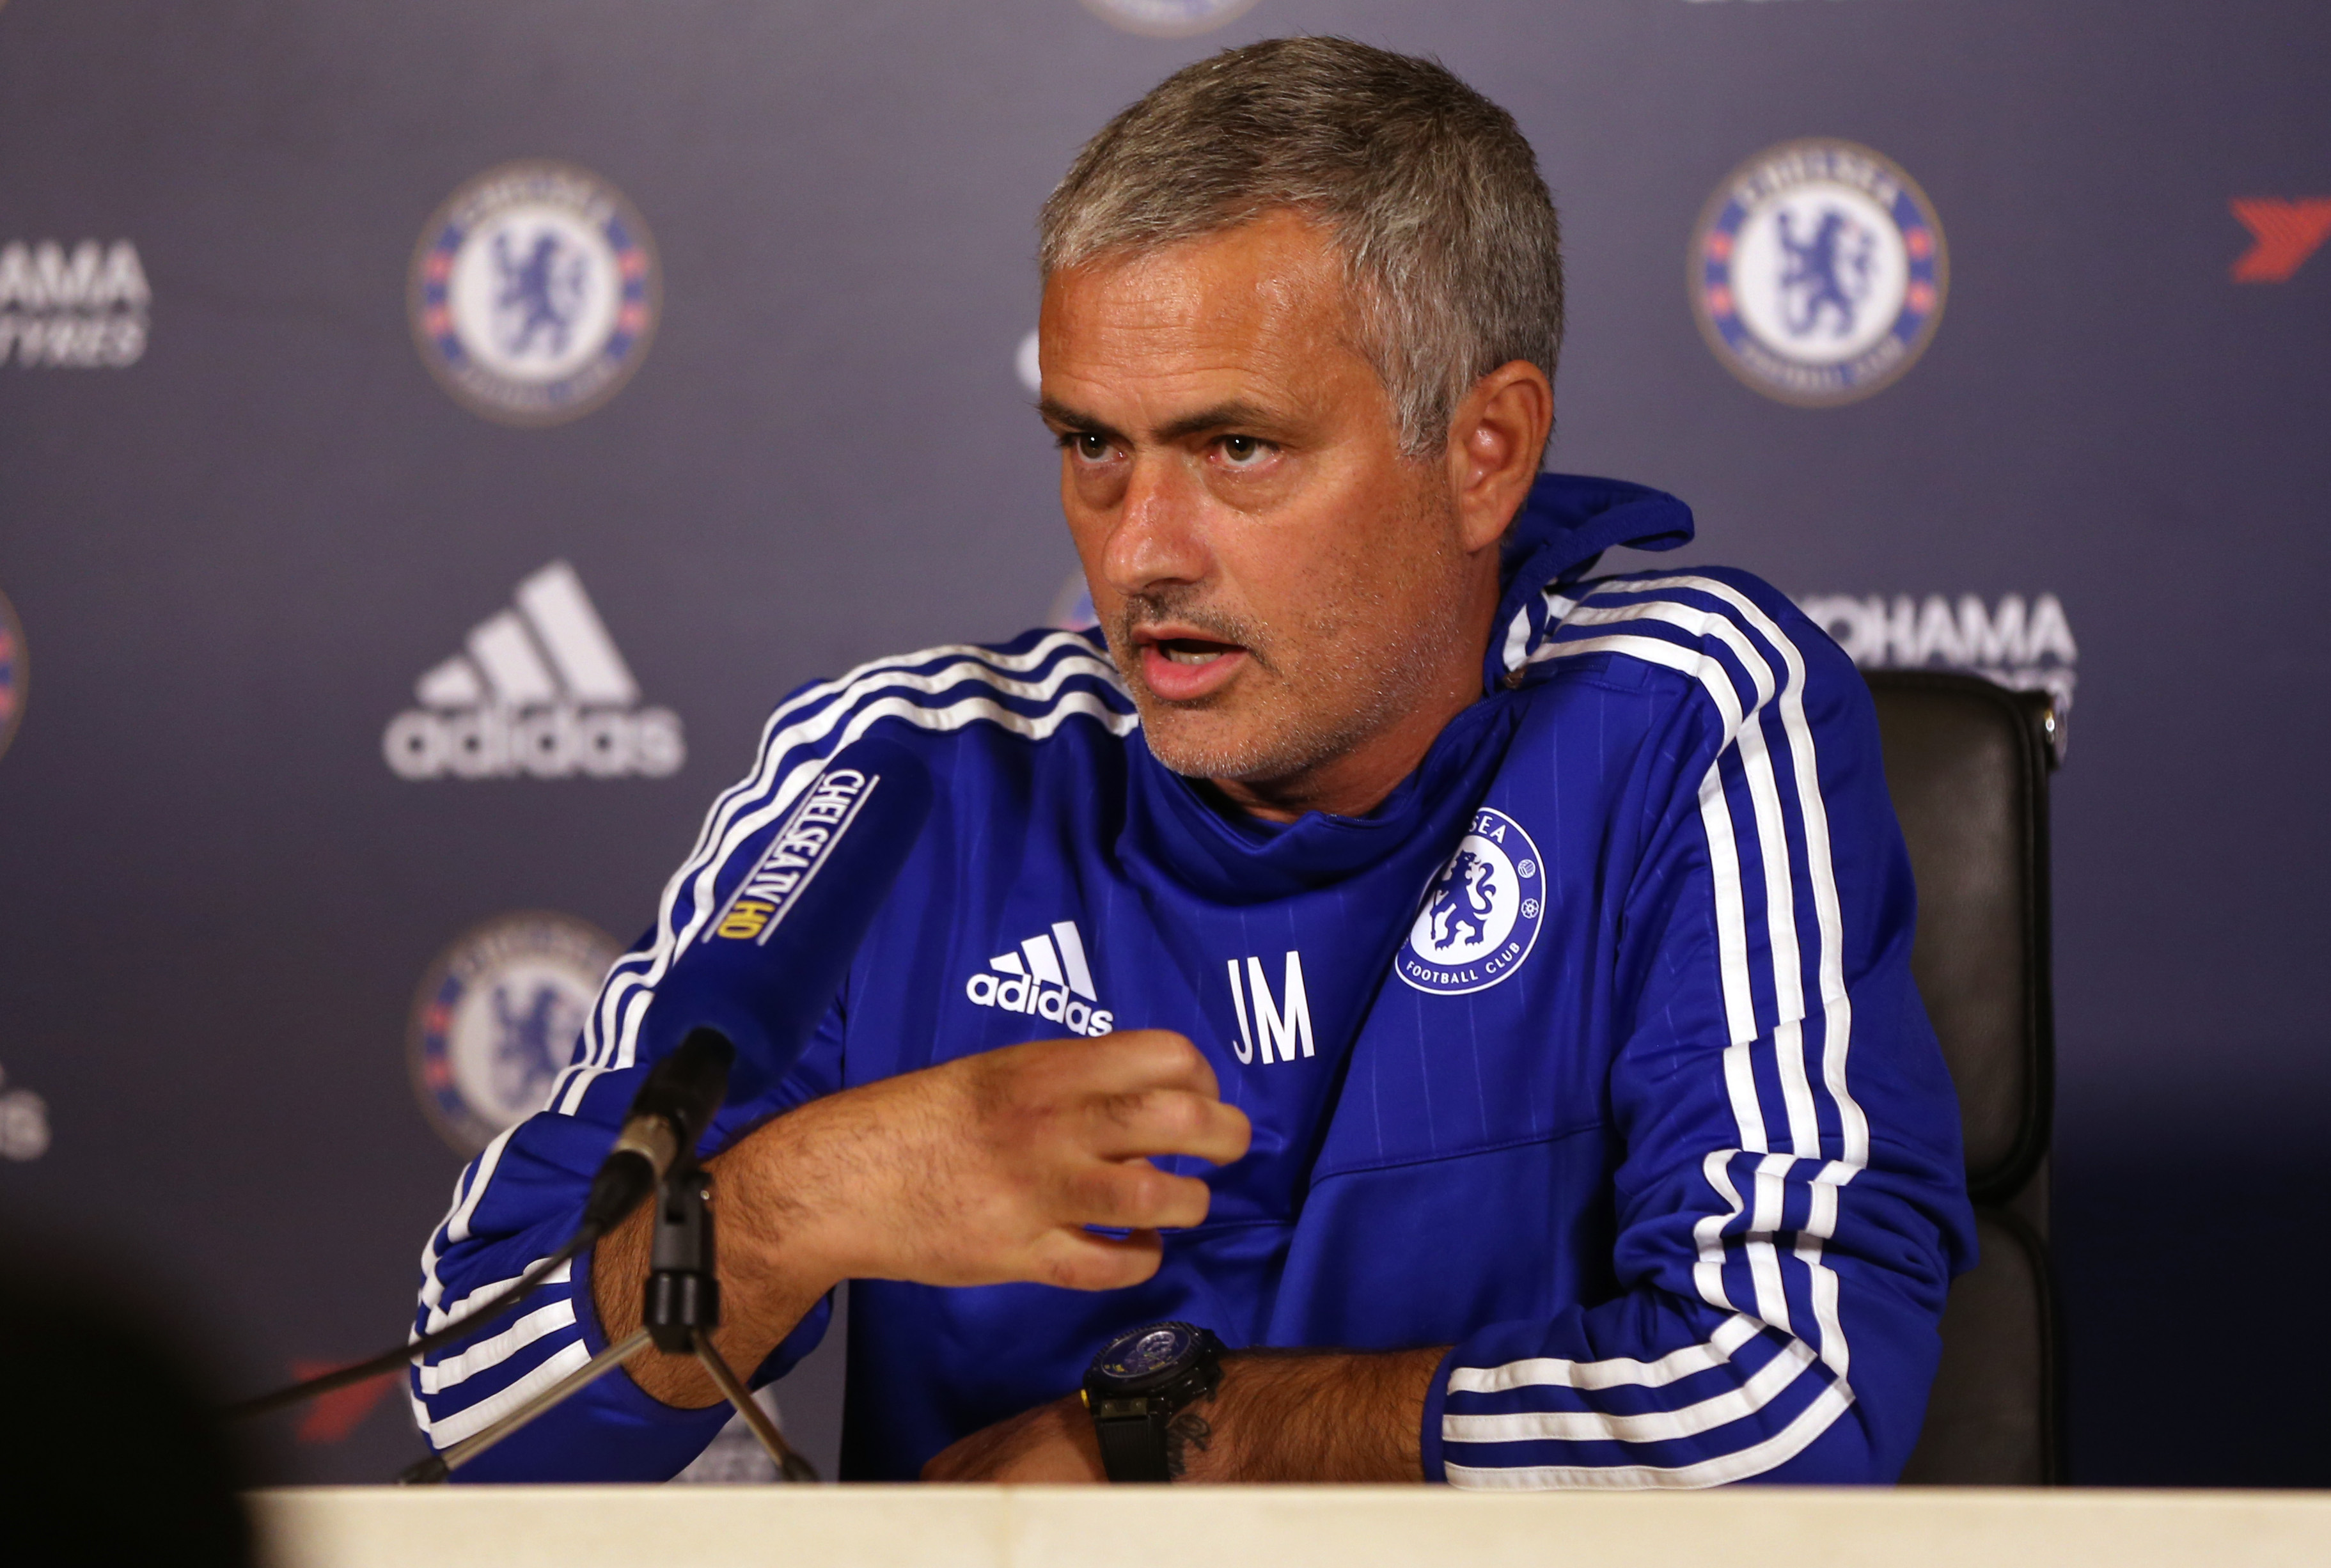 Chelsea Manager Jose Mourinho during press conference on October 2, 2015. Photo: Reuters